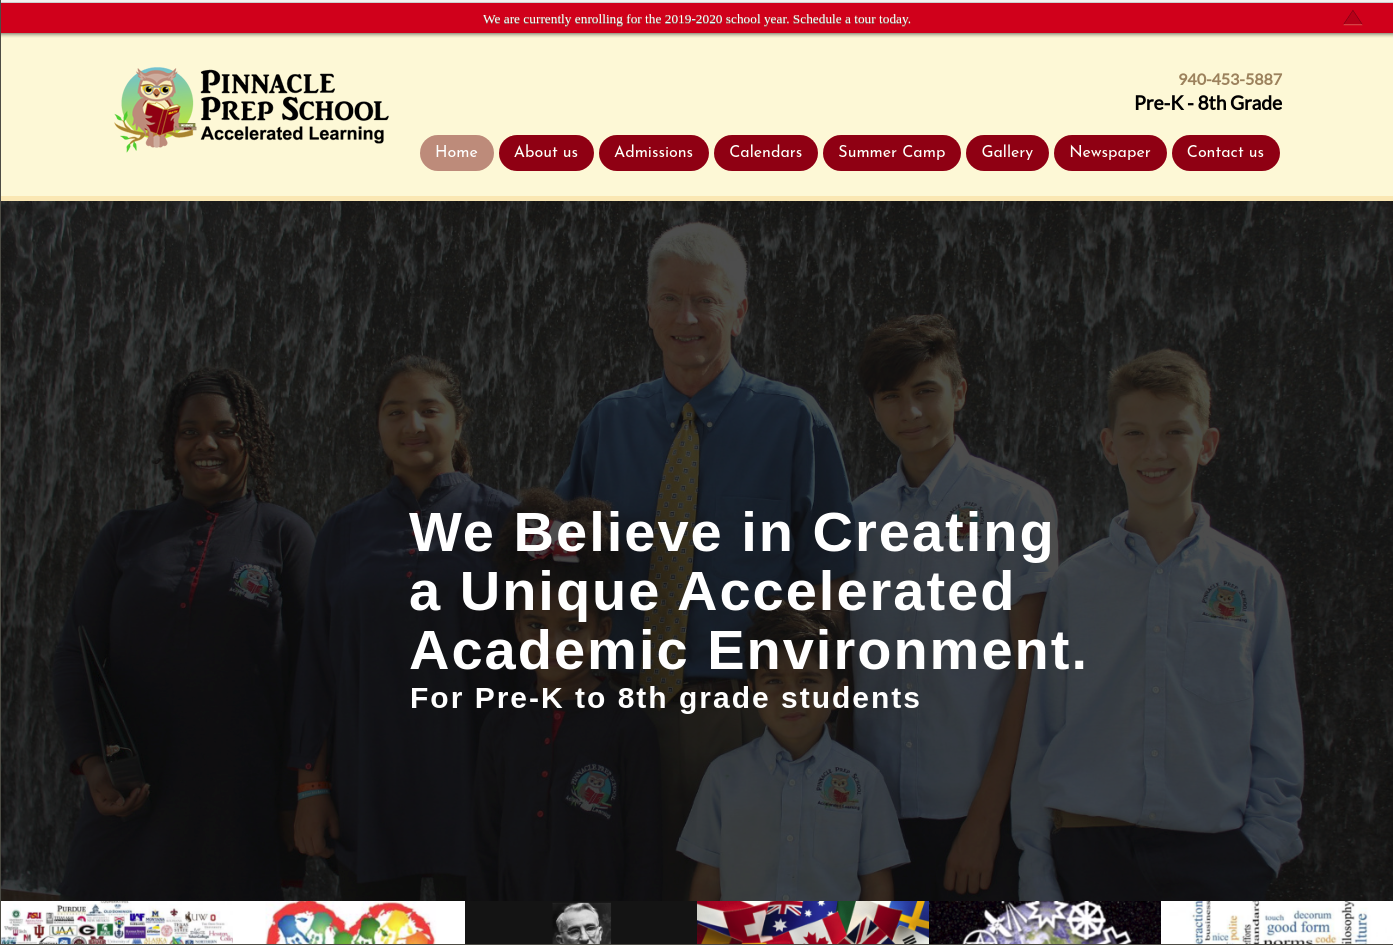 Pinnacle Prep School WordPress